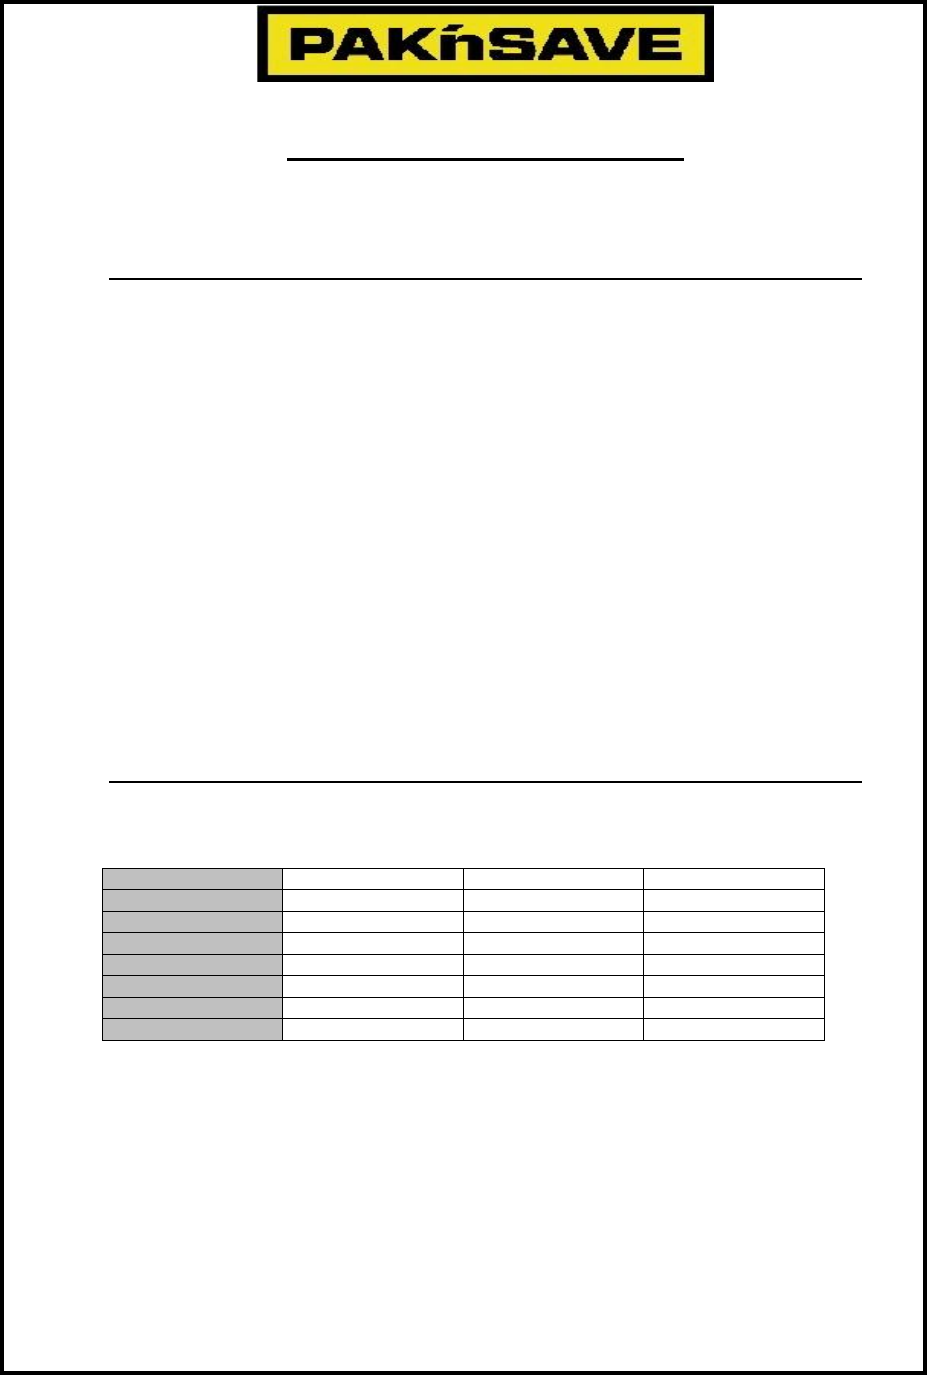 PAK\'nSAVE Application for Employment Form Free Download